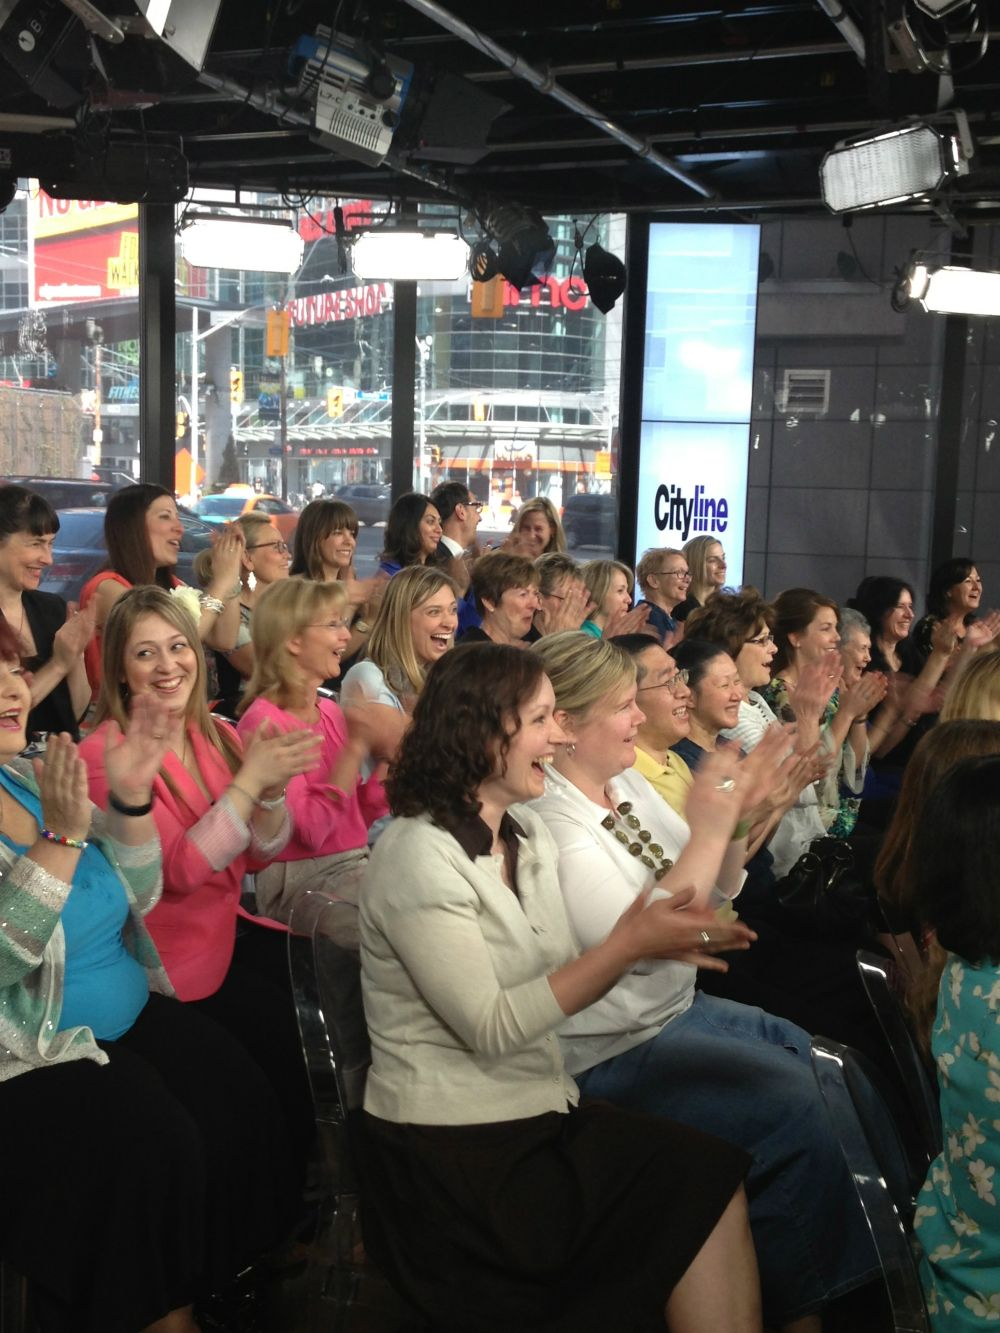 The audience goes wild after hearing they have all won a trip for two with Porter Airlines!